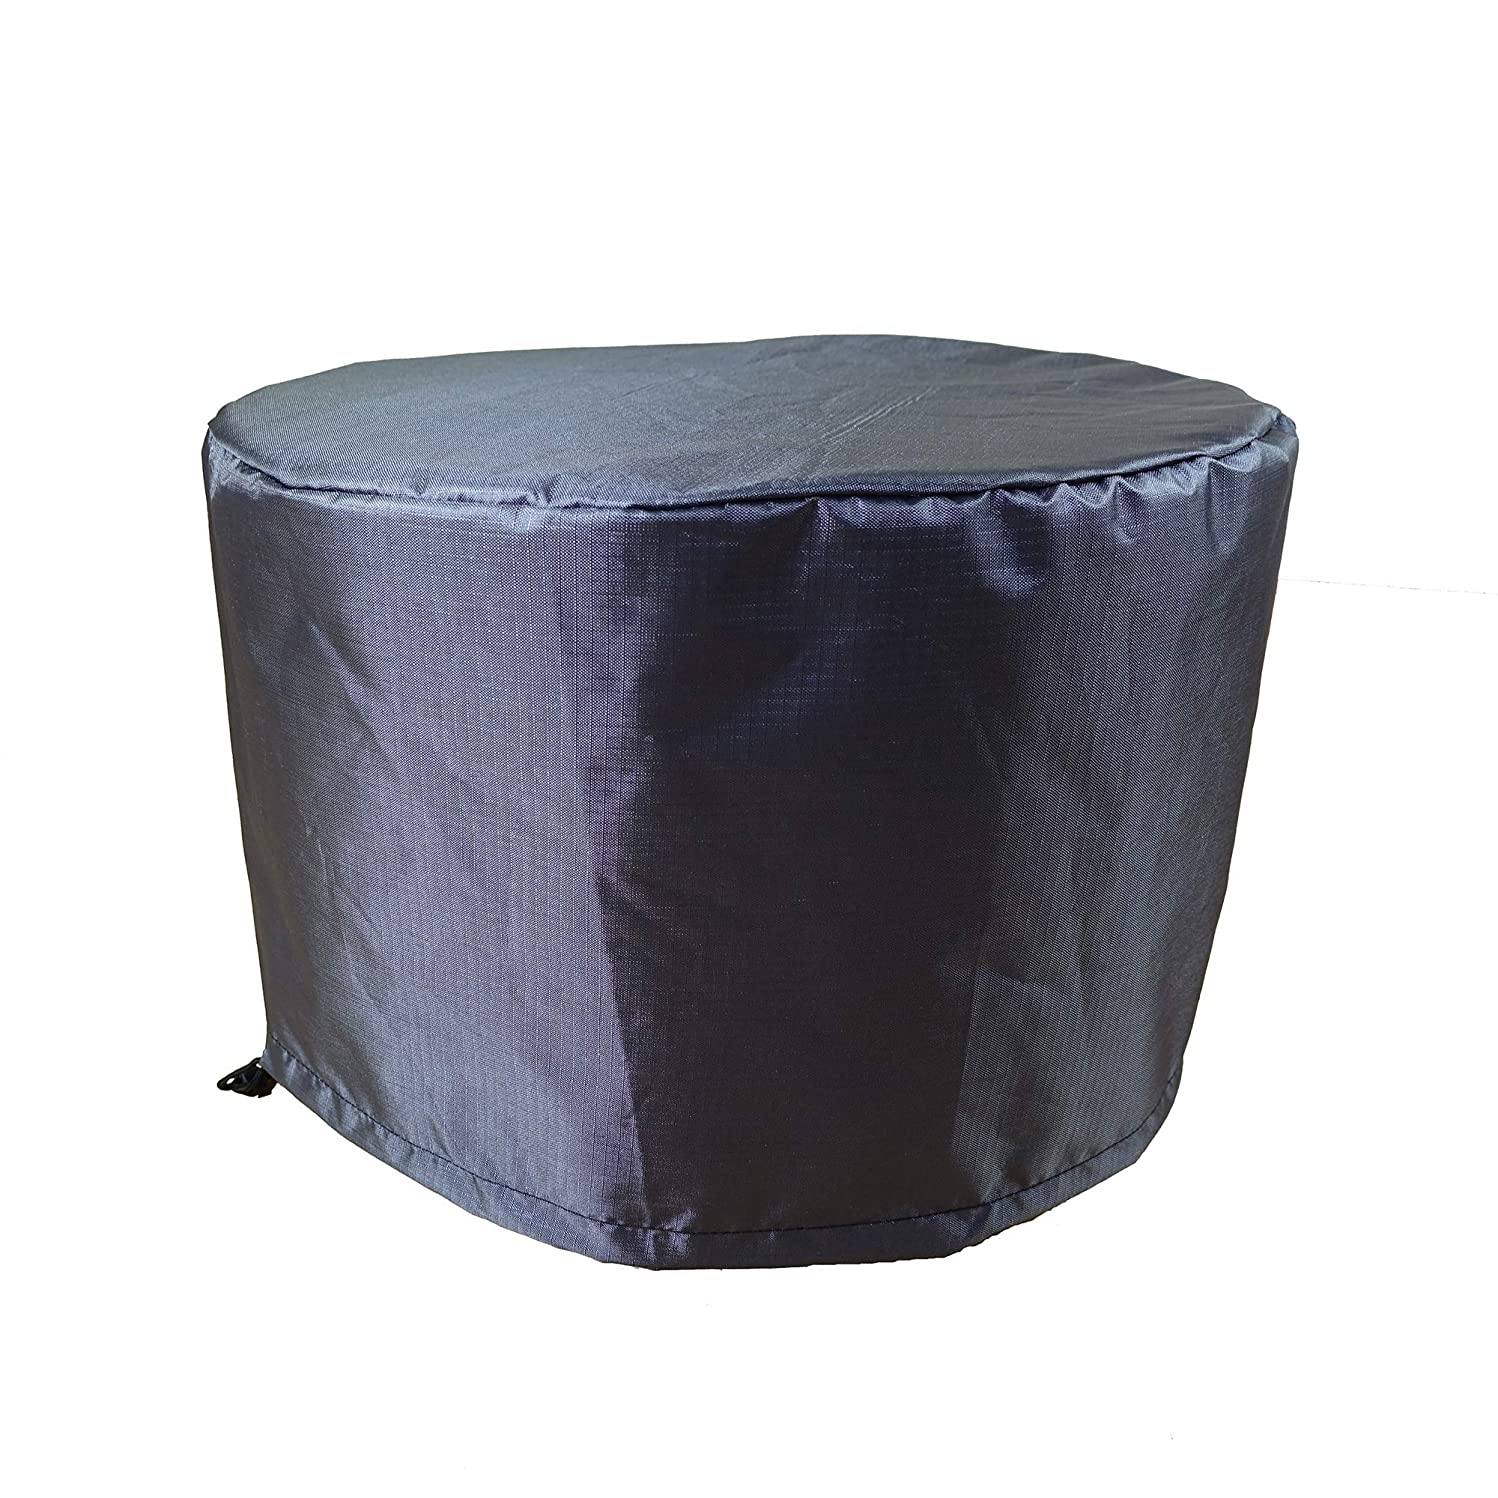 Shield Gold 2-Layer Polyester Fabric Outdoor Fire Table Round Cover - 36.5x25 Charcoal Grey